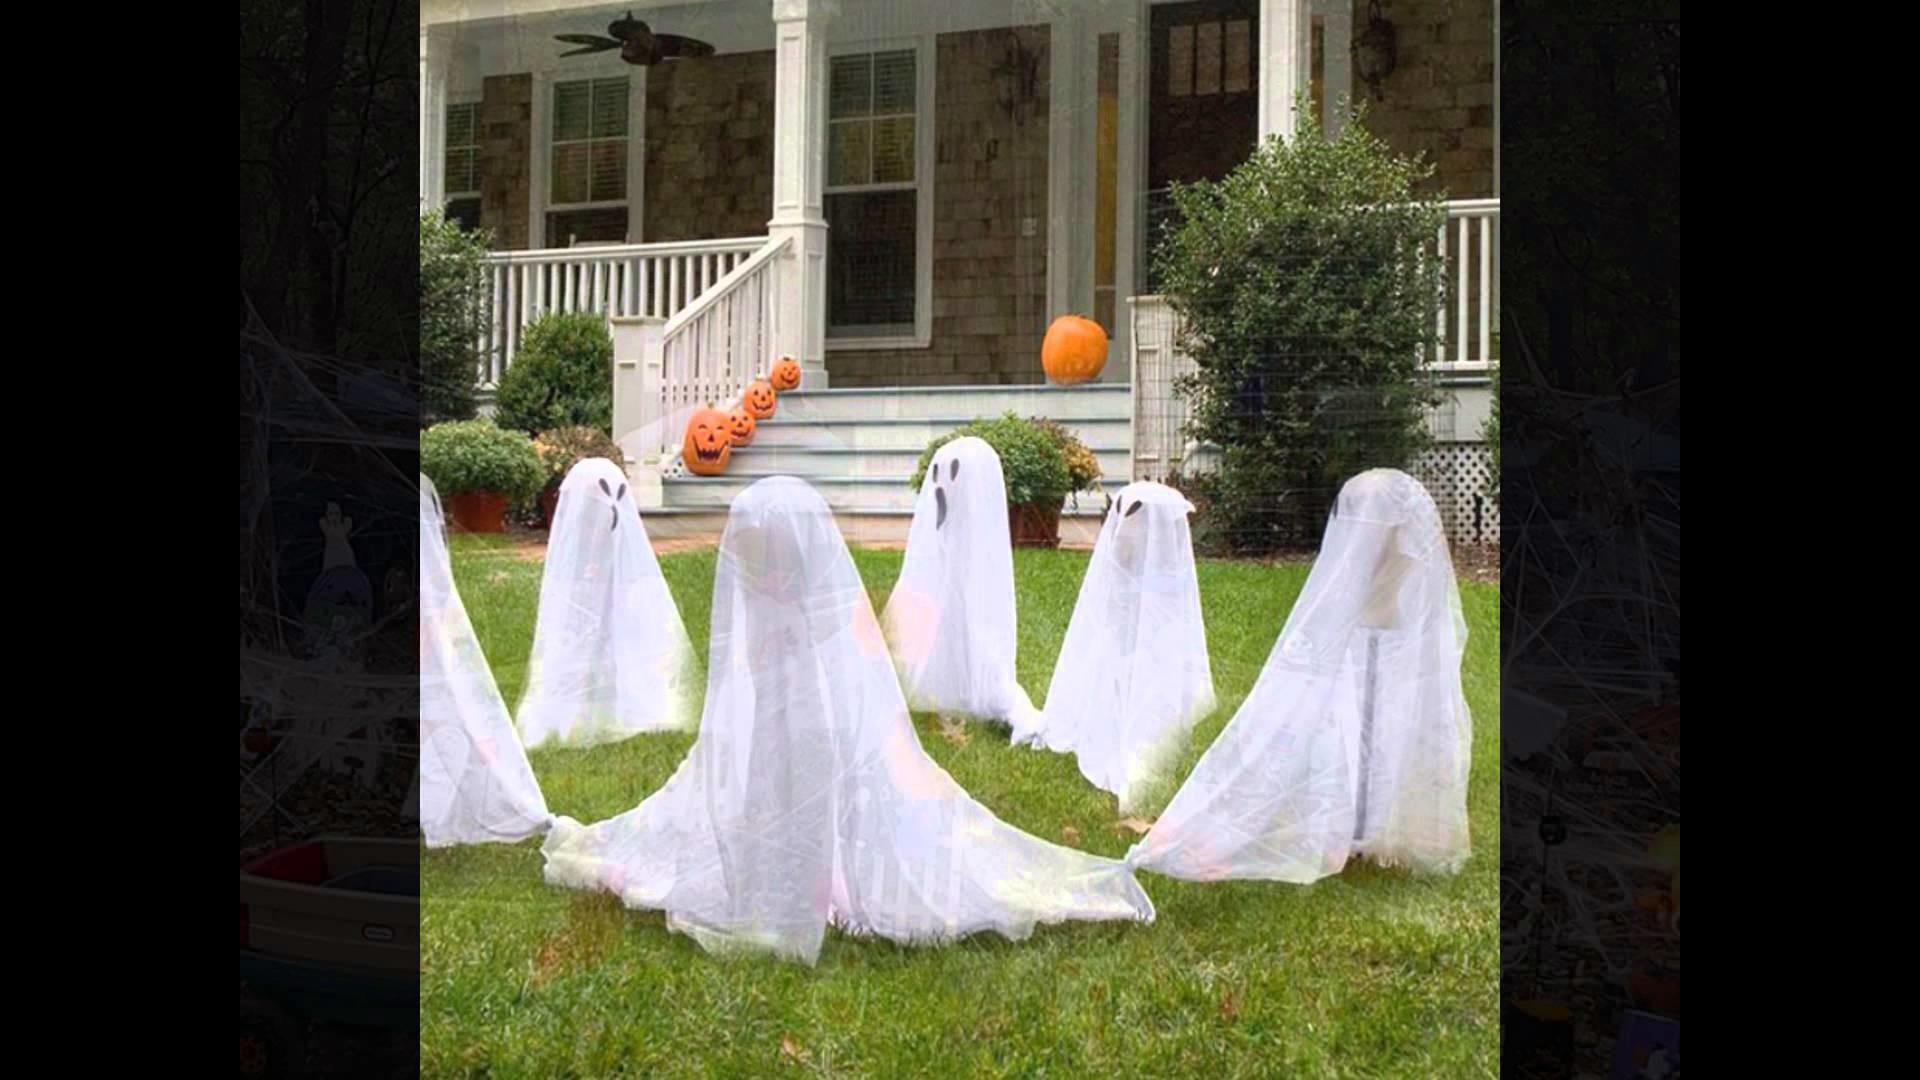 Easy Cheap Halloween Decorations Diy Homemade Ideas